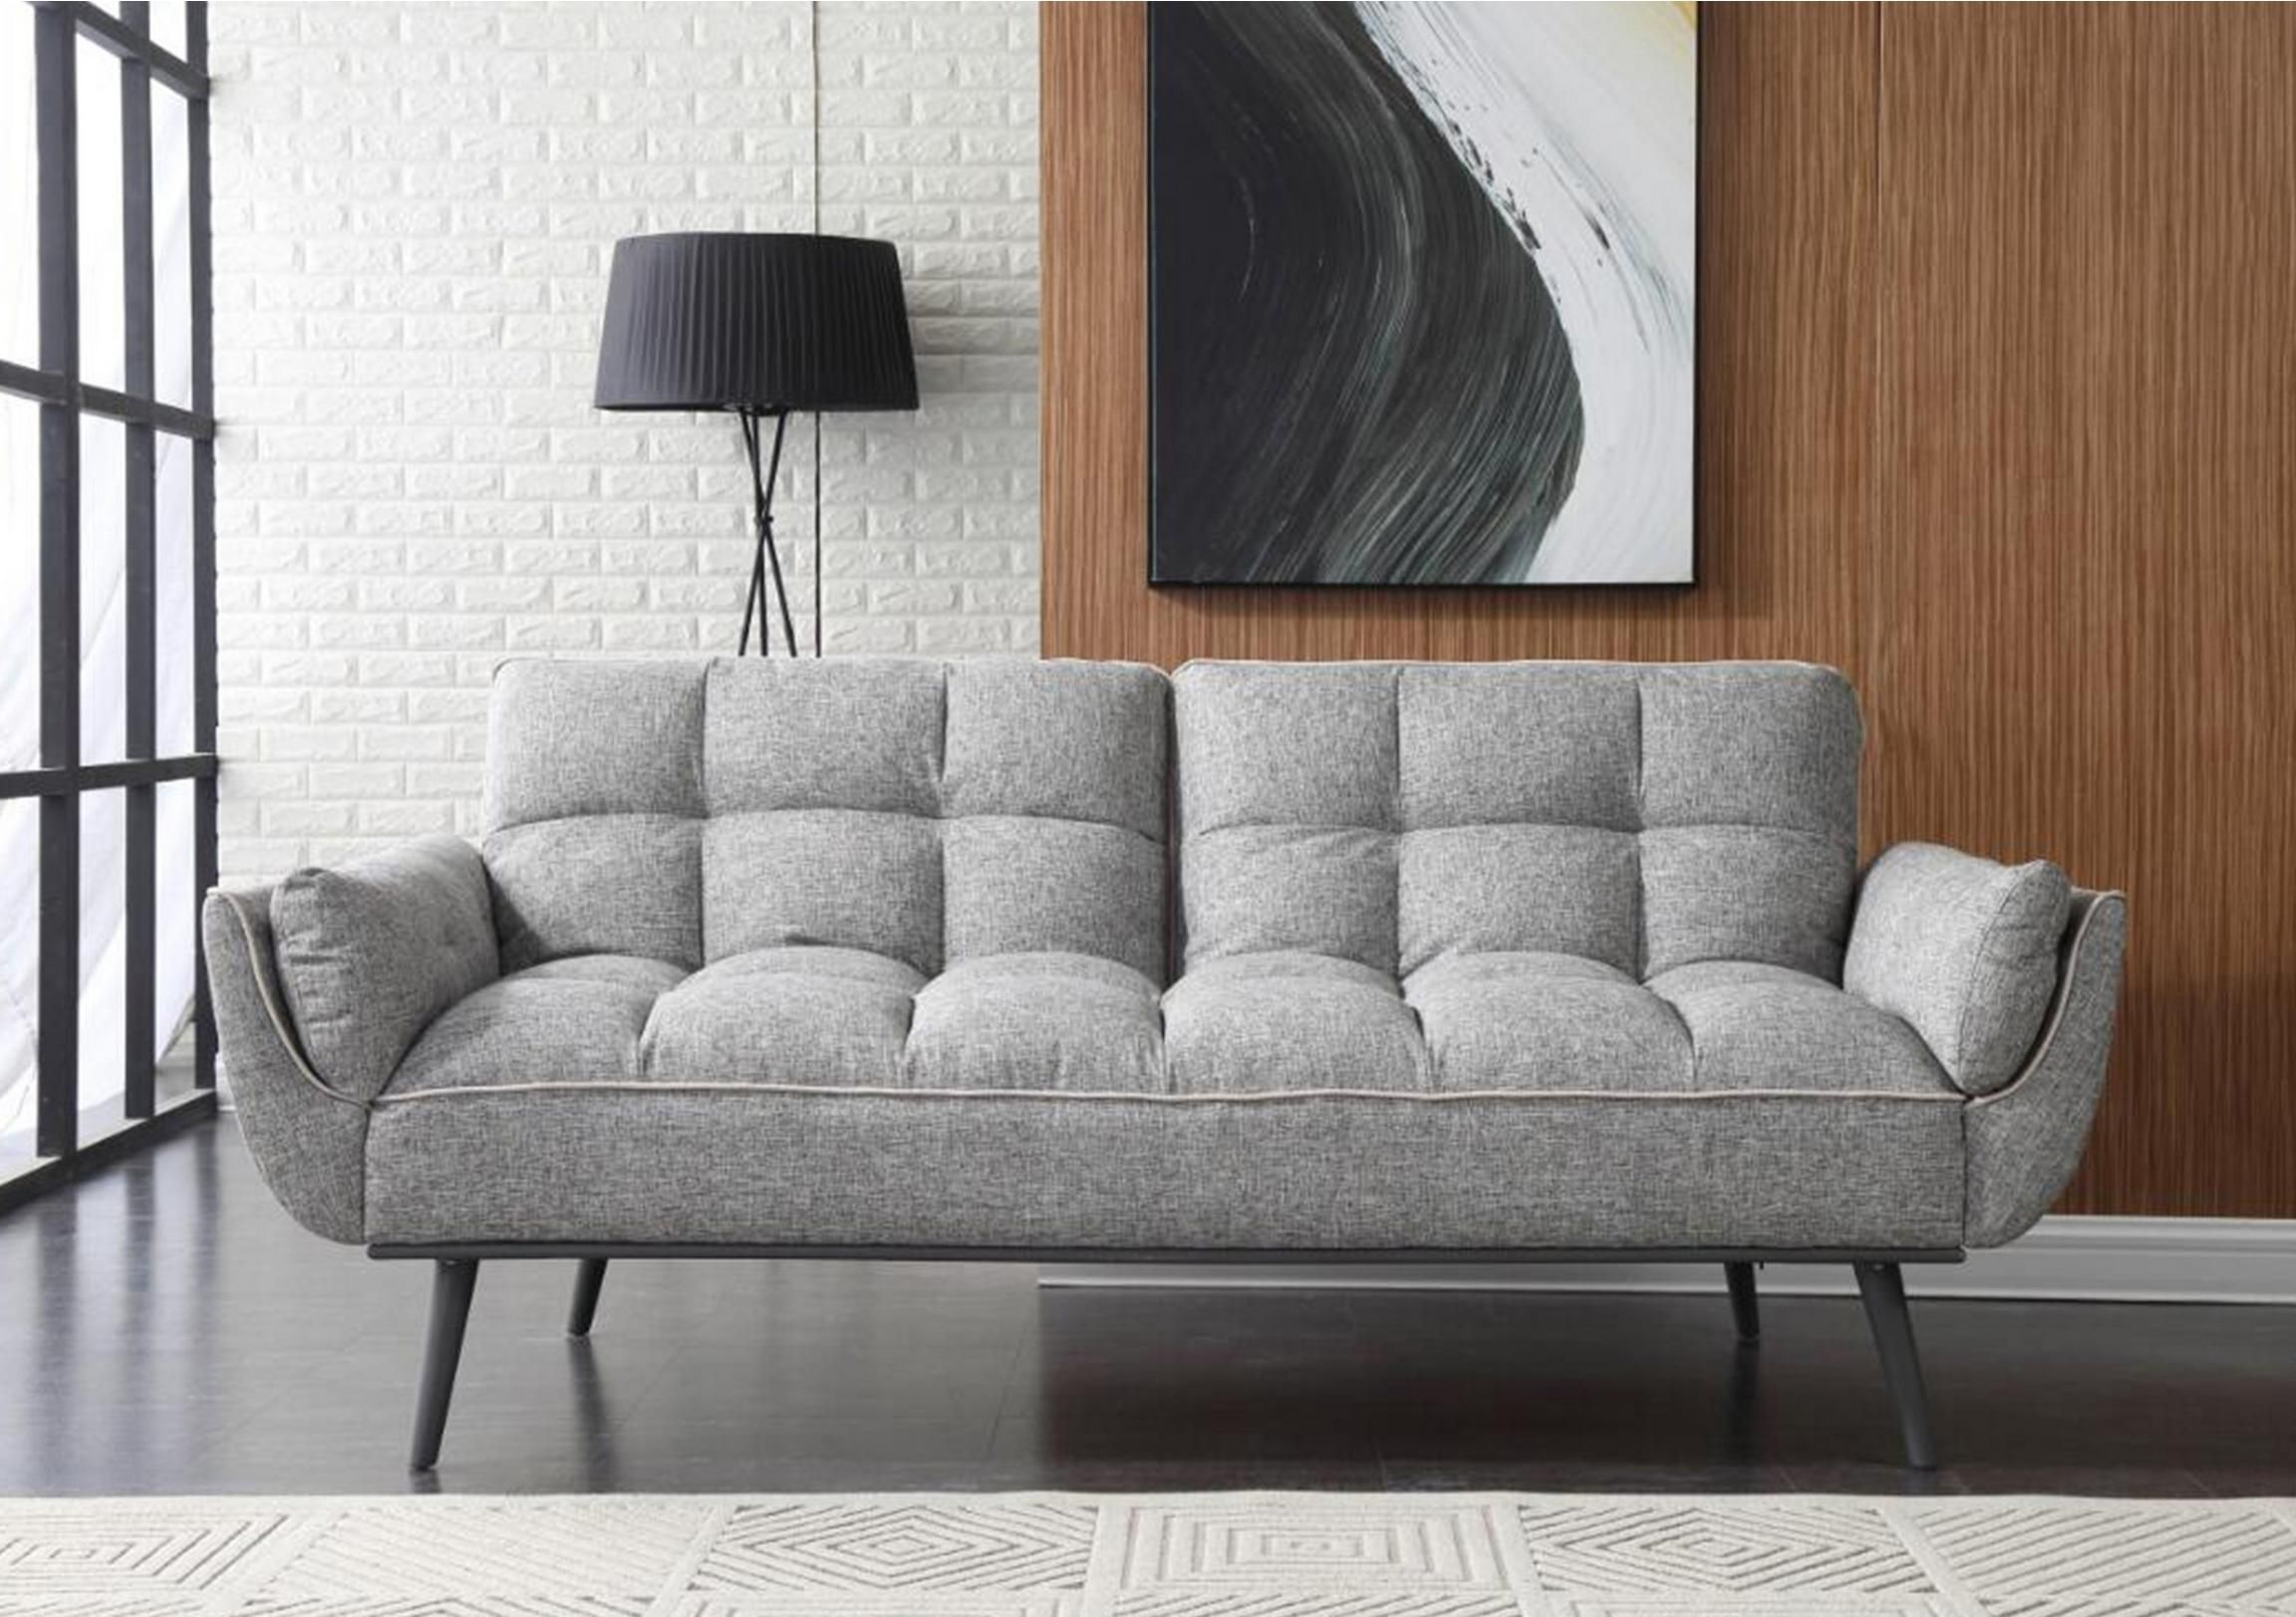 Wondrous Fabulously Stylish Modern Sofa Bed With Cushioned Panelled Creativecarmelina Interior Chair Design Creativecarmelinacom